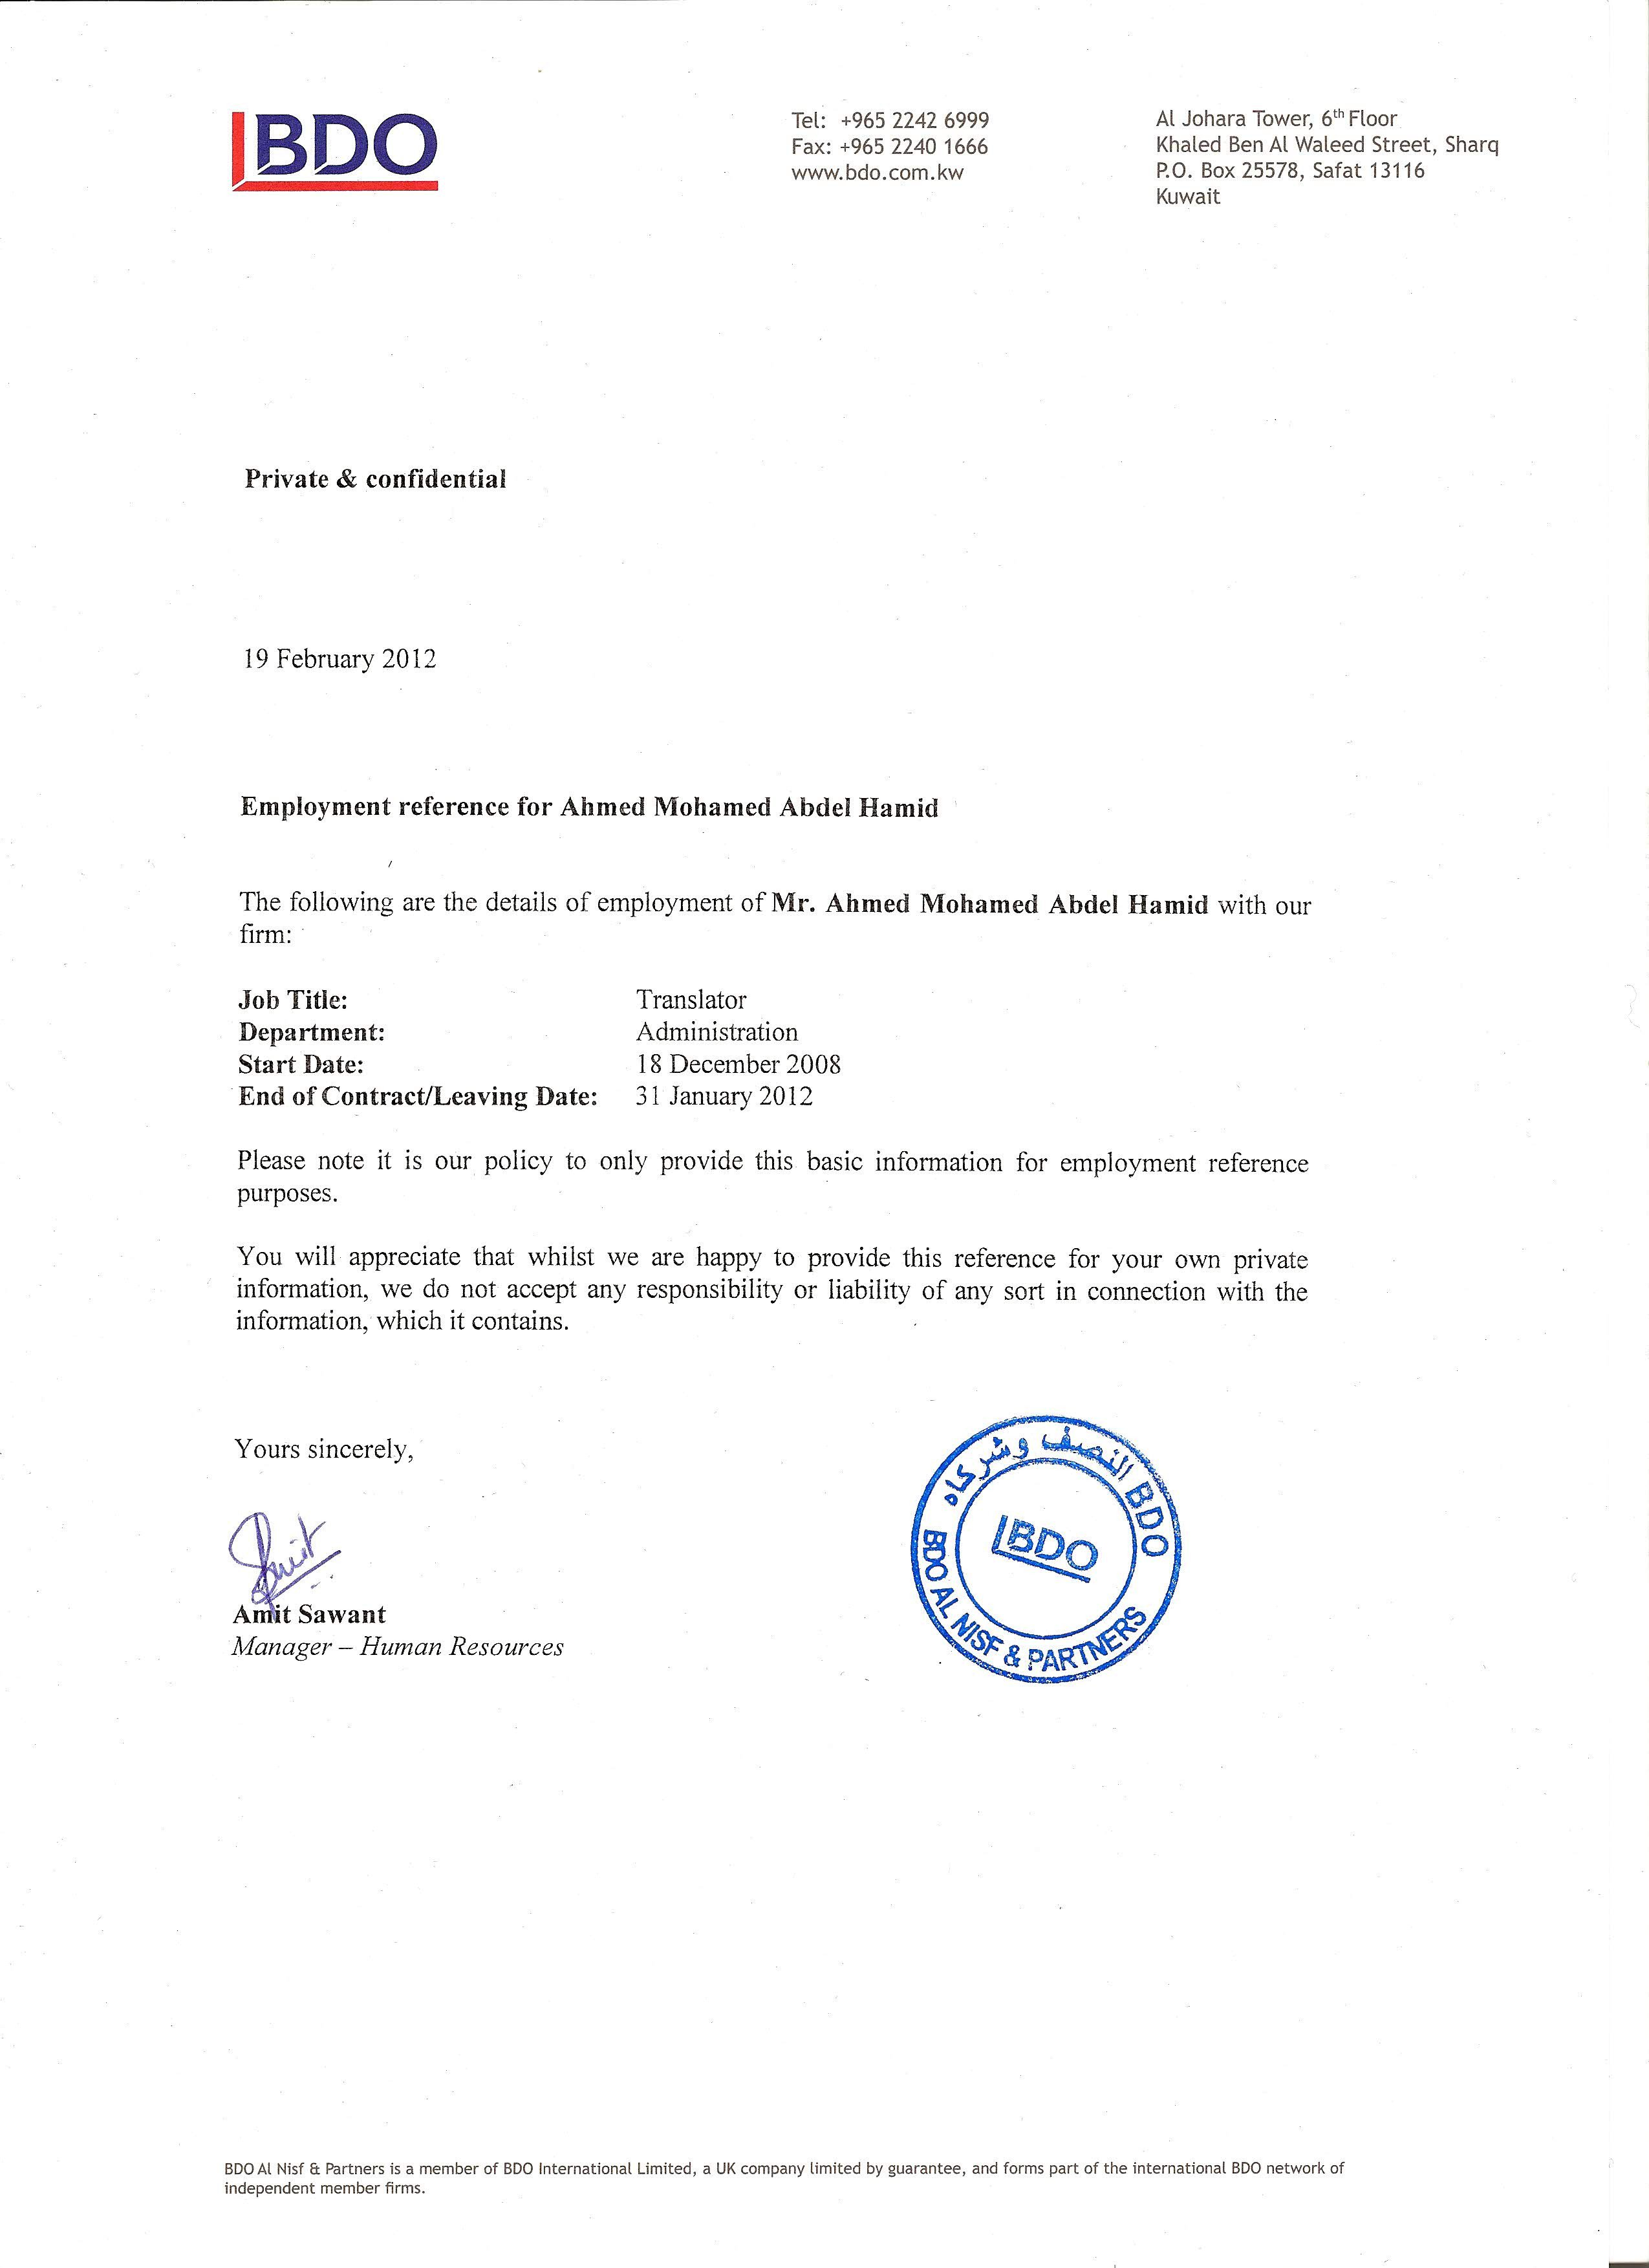 Certificate Of Employment Template Bdo Employment Certificate Free Download Borrow and